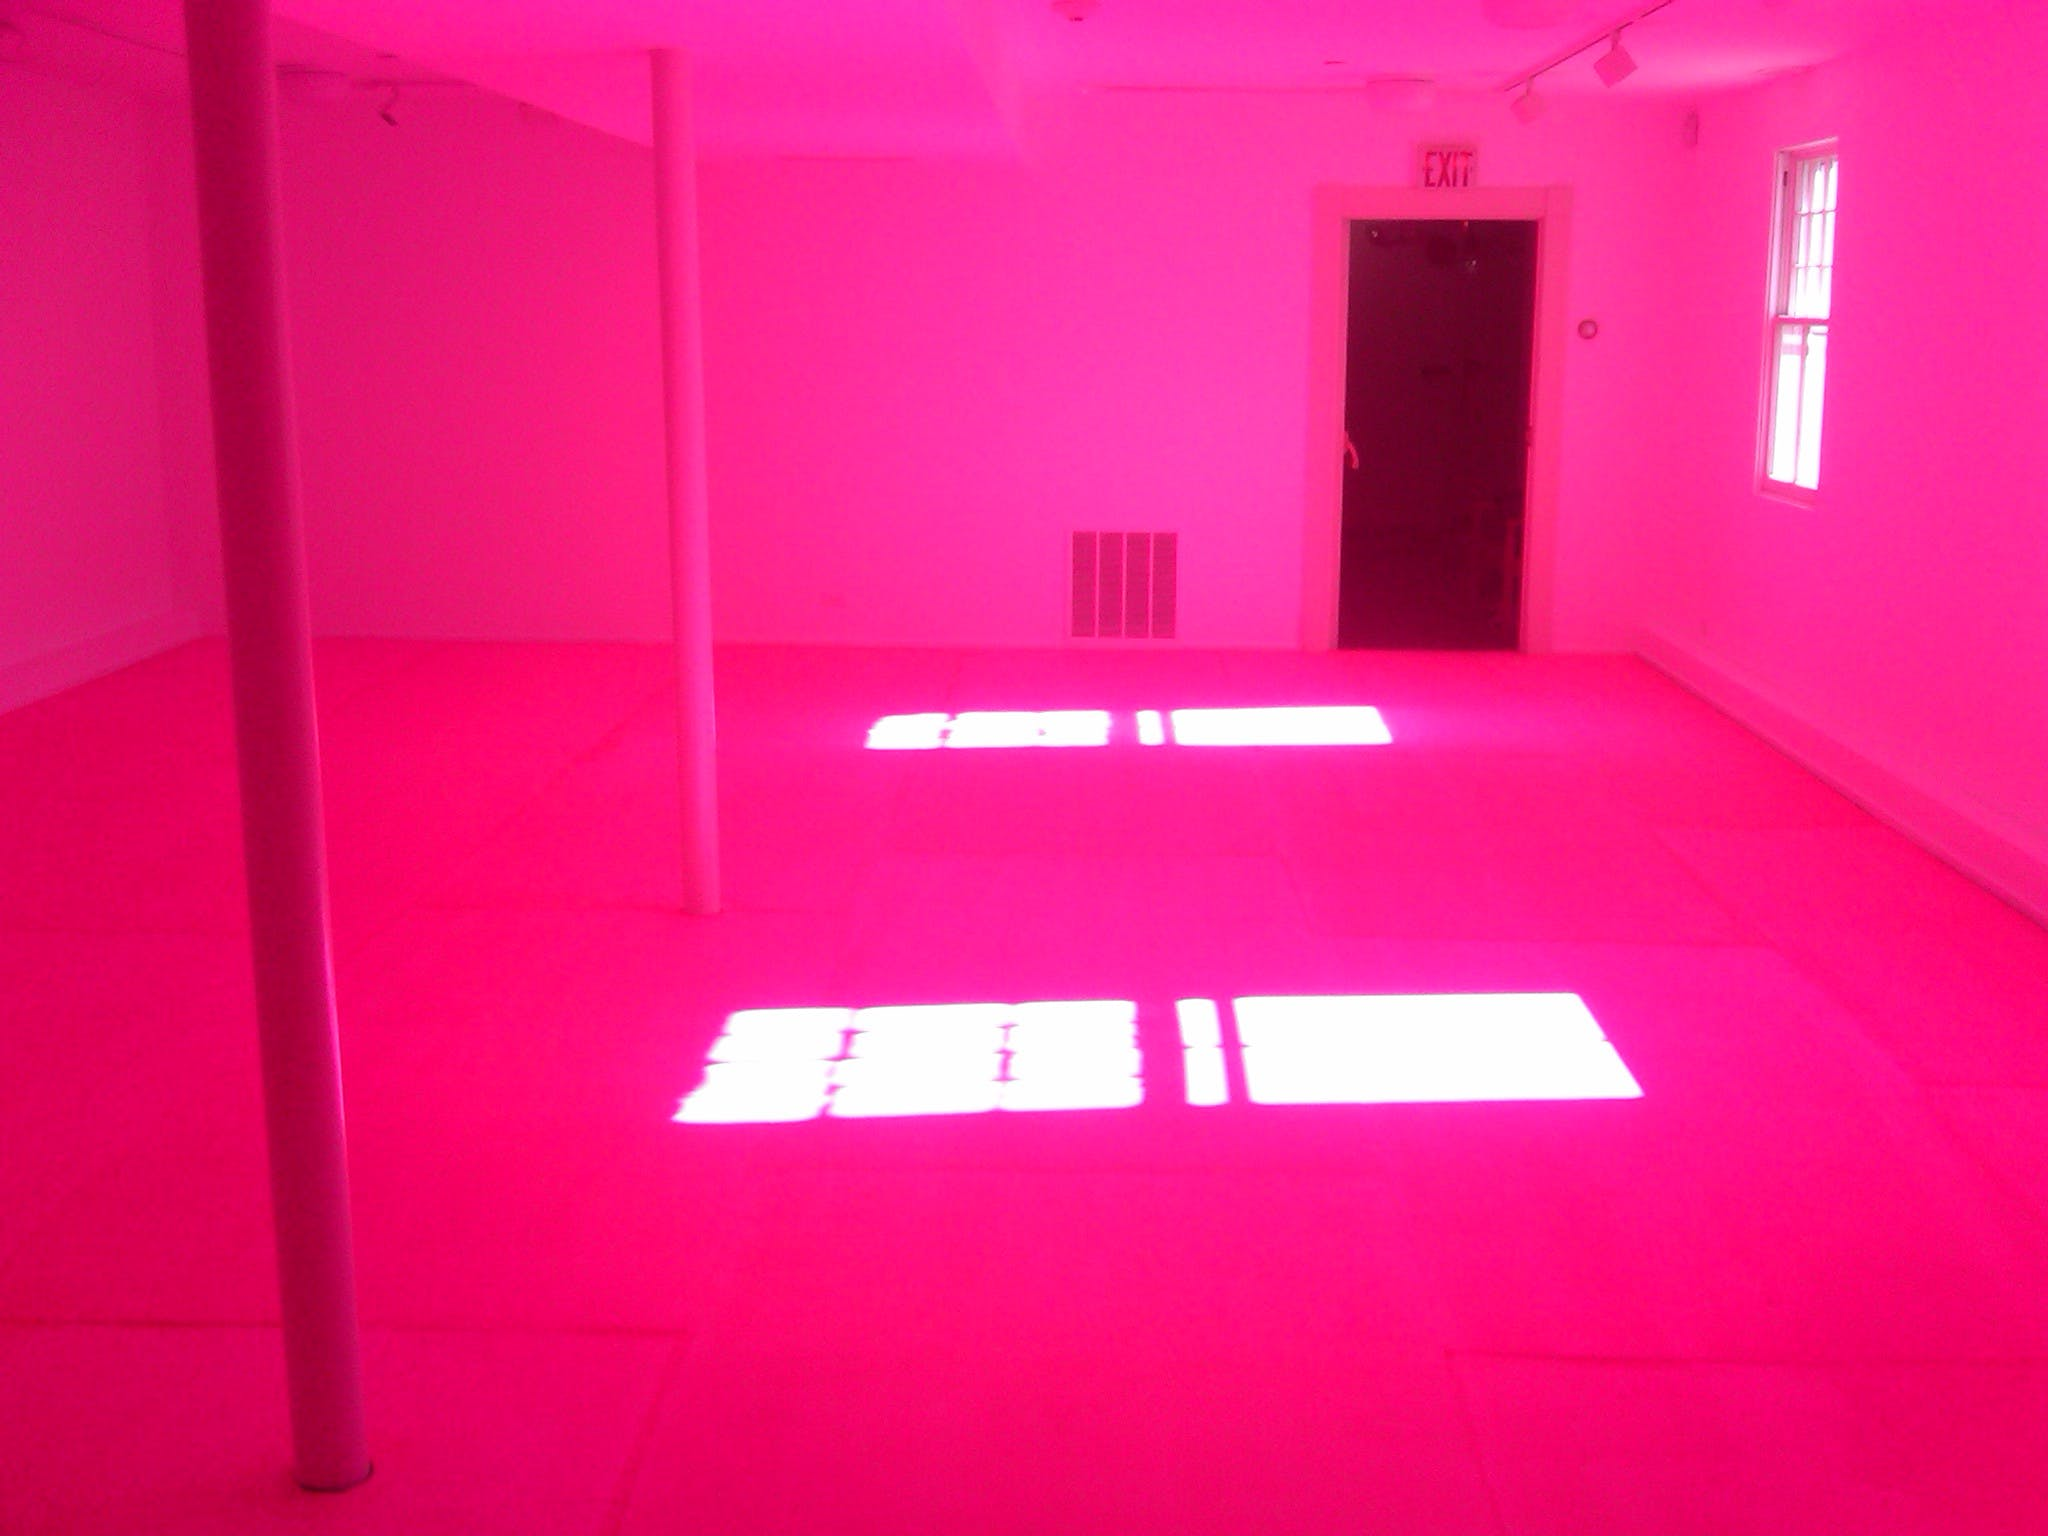 Koo Jeong A, Constellation Congress, Dan Flavin Institute, 2010